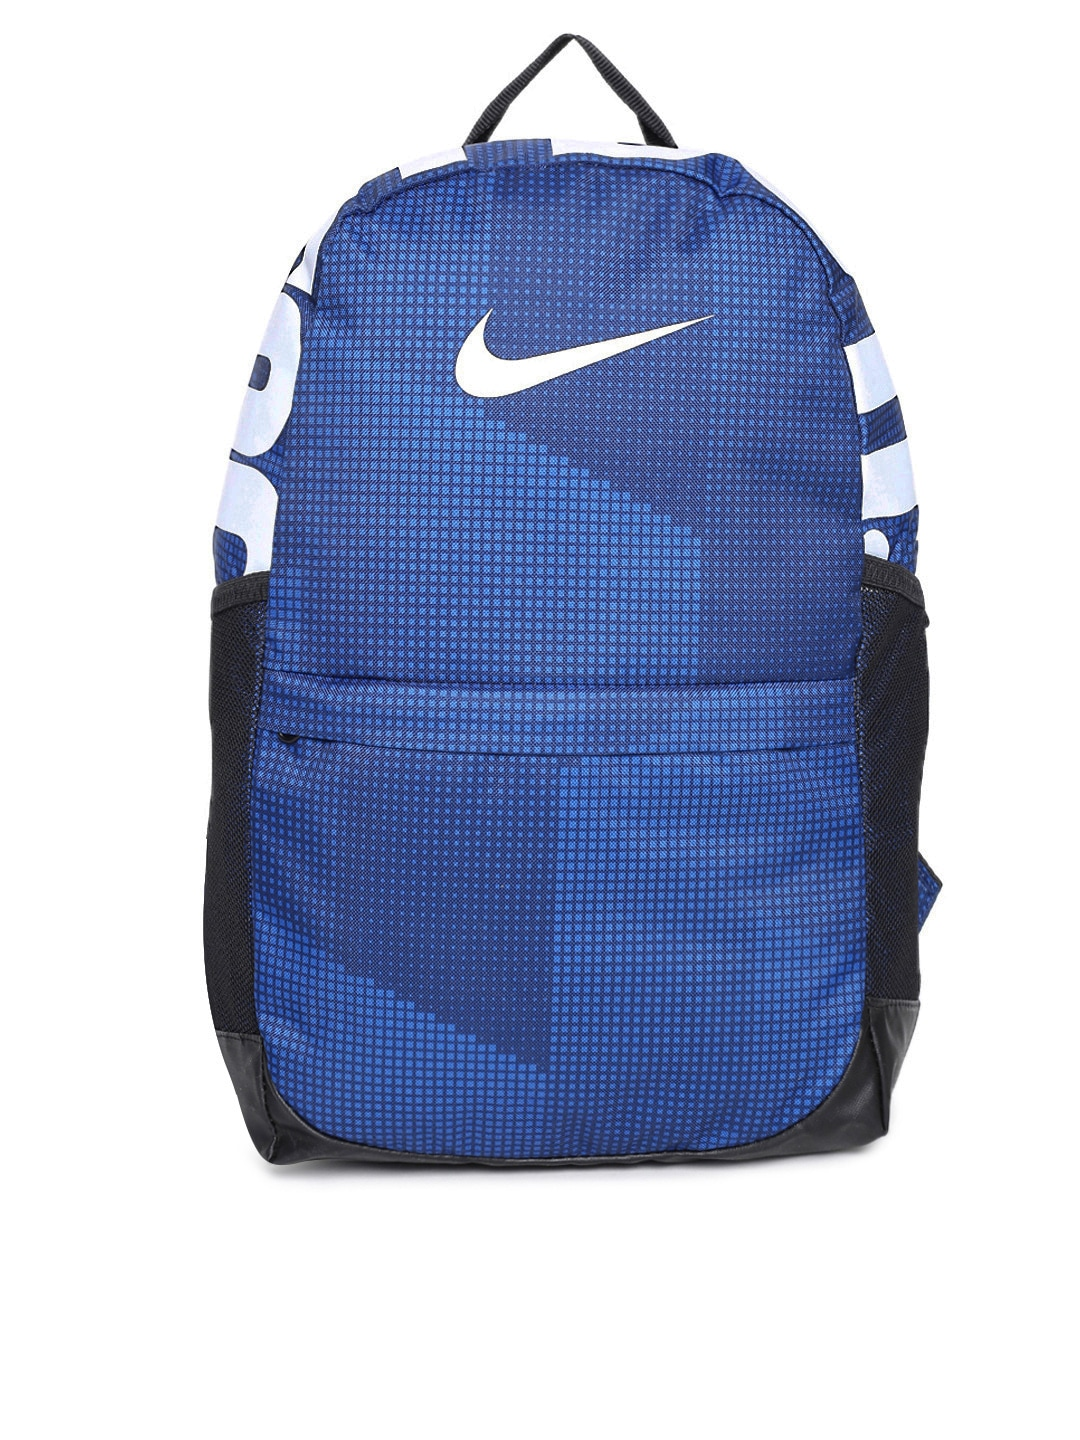 28a796cfc8ed Accessory Backpack - Buy Accessory Backpack online in India